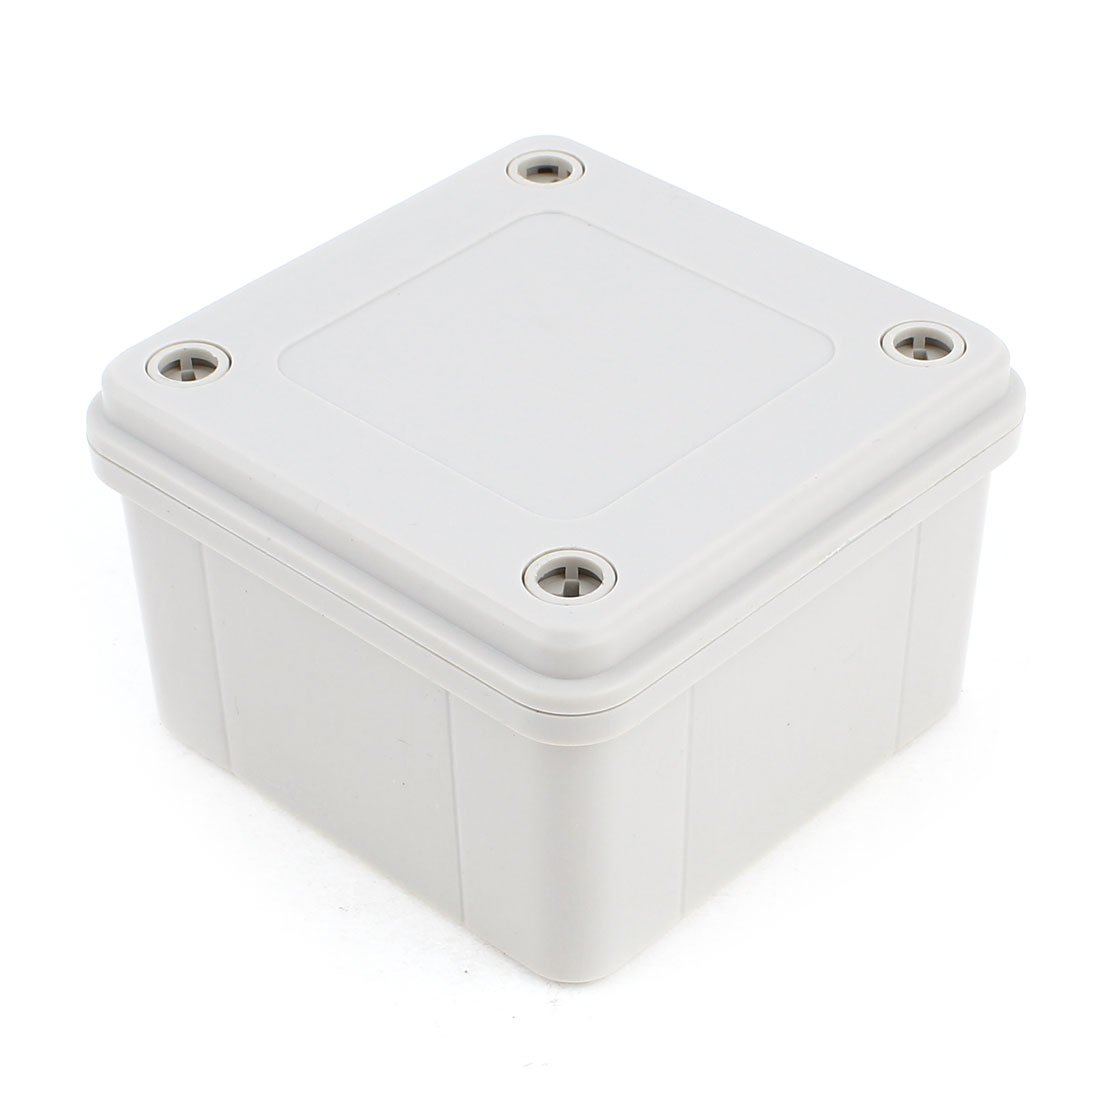 96mm x 96mm x 60mm Dustproof IP65 Plastic DIY Junction Box Power Protection Case